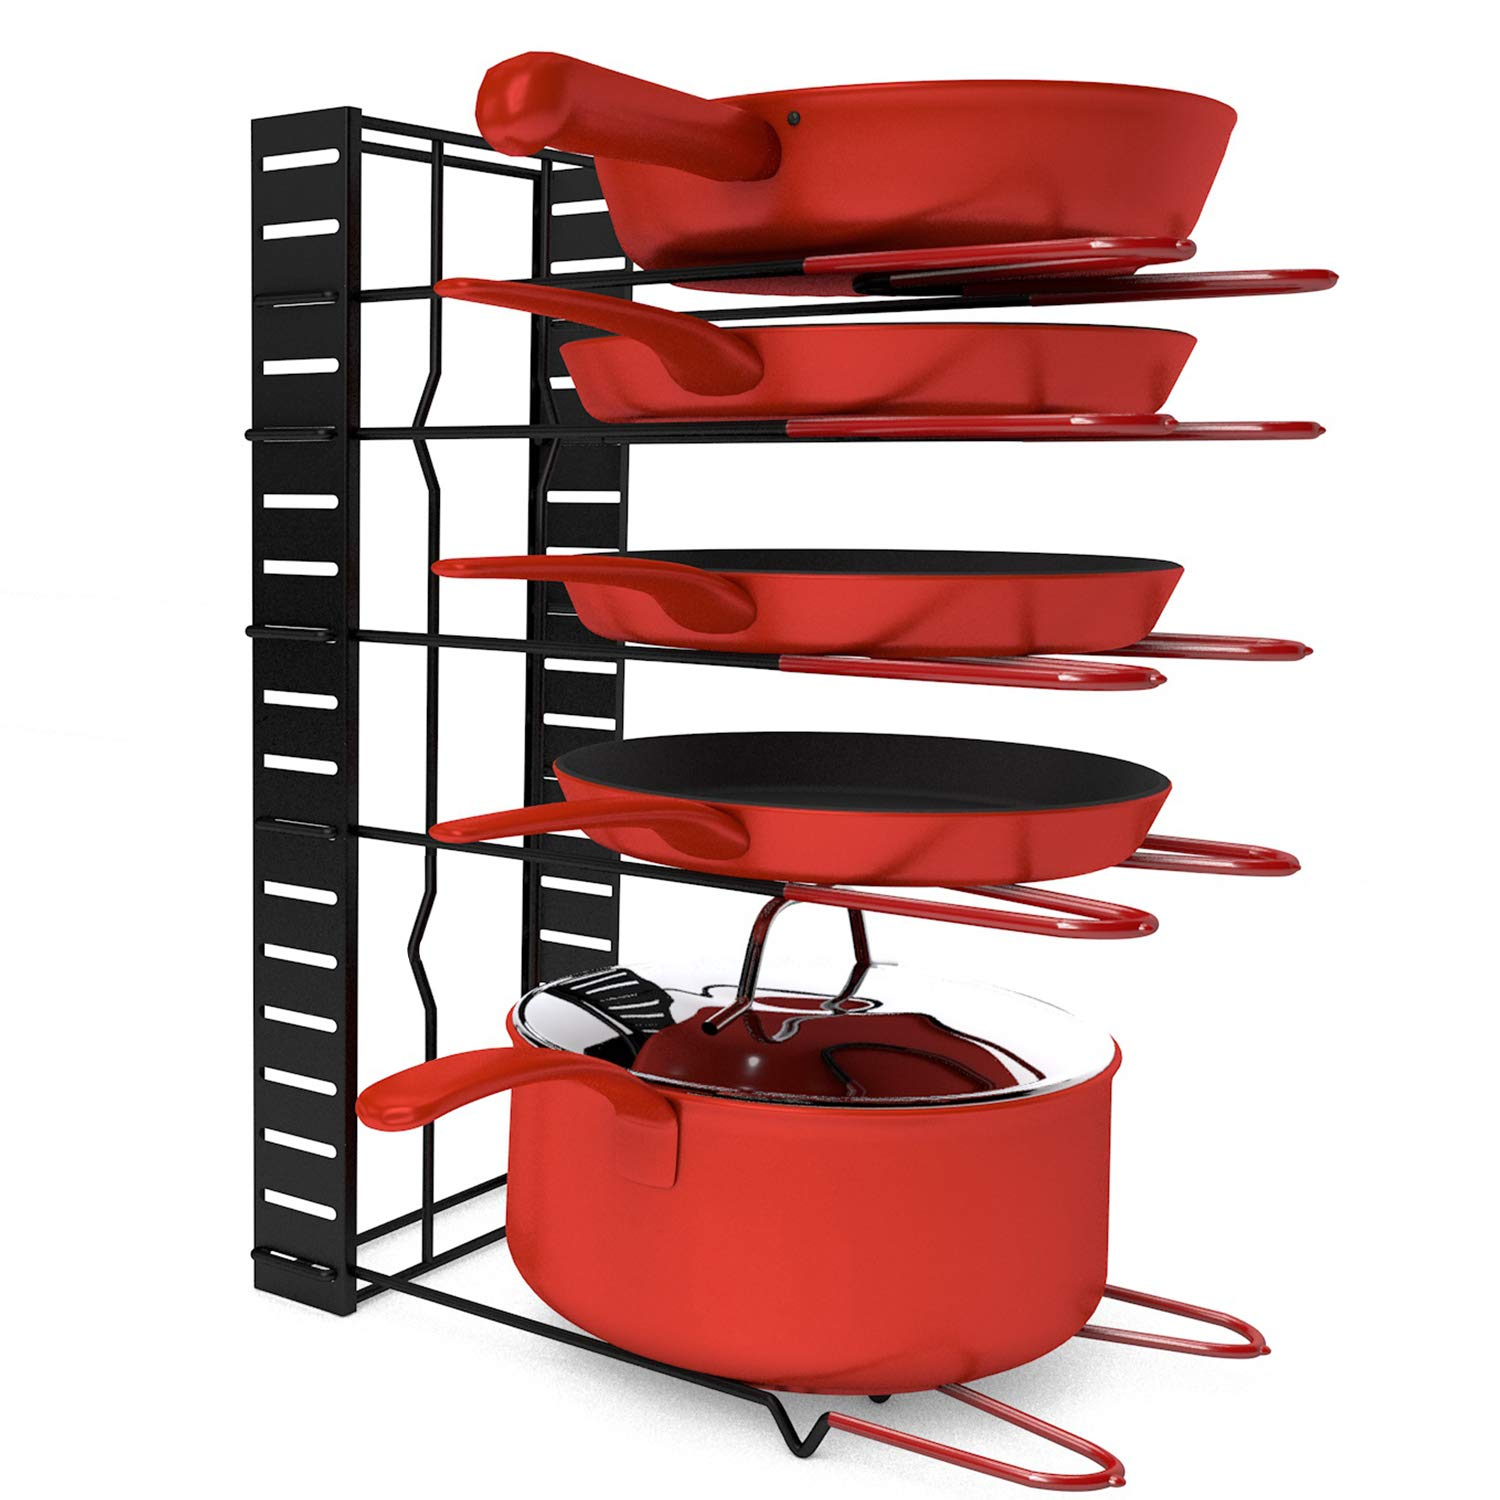 MCIRCO Pot Rack Organizer, 3 DIY Methods, Height and Position are Adjustable 8+ Pots Holder, Black Metal Kitchen Cabinet Pantry Pot Lid Holder by Mcirco (Image #2)